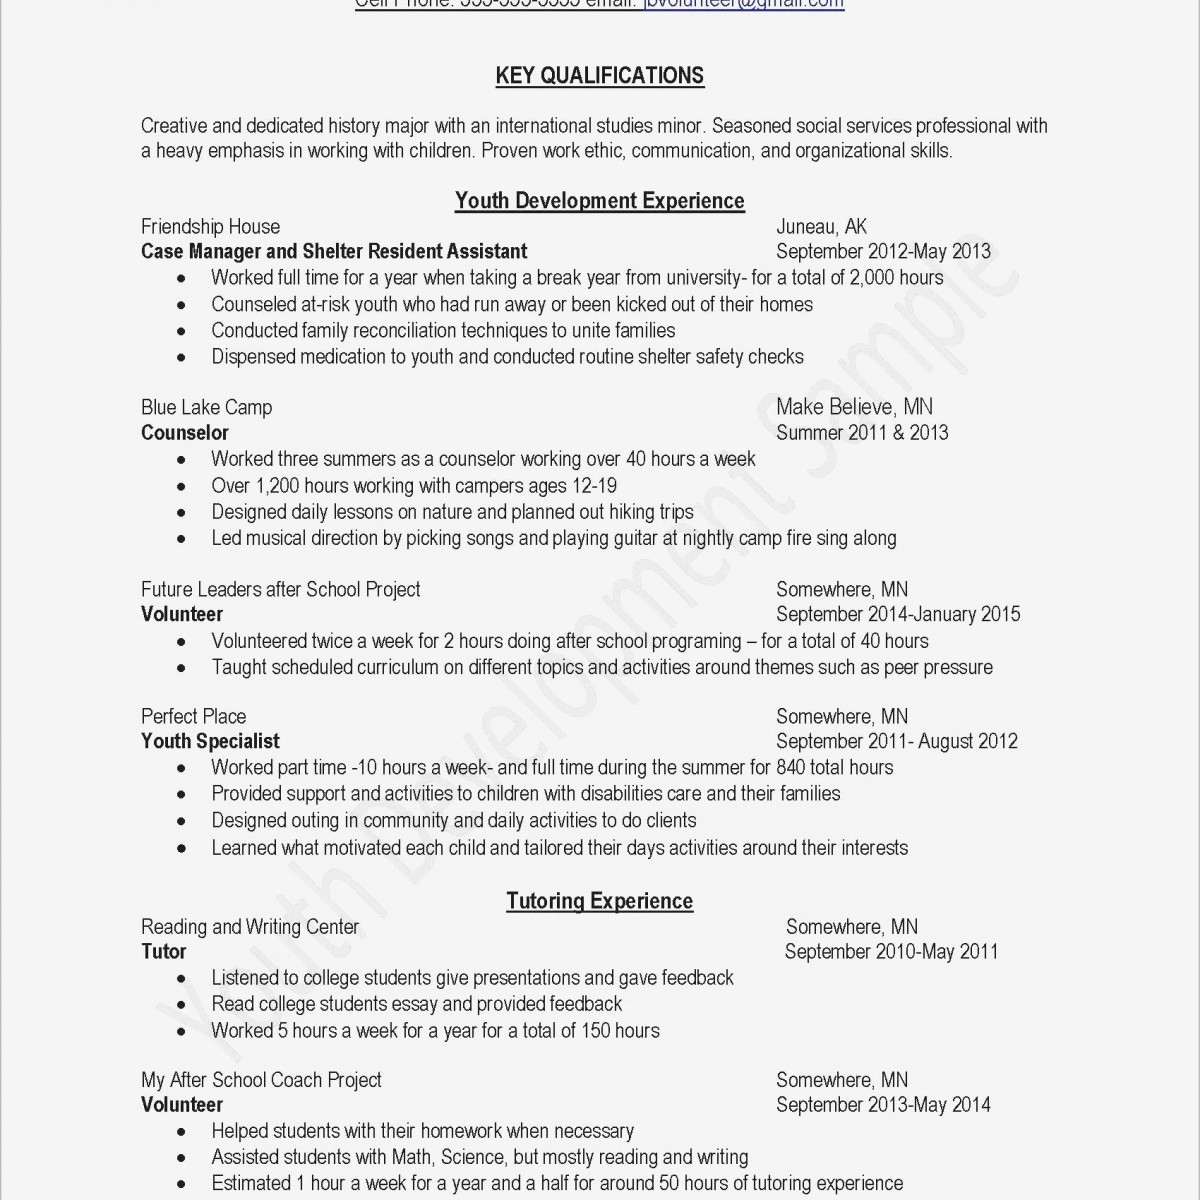 skills usa resume template example-Good Work Skills for Resume Elegant Skills Resume Templates Beautiful Job Fer Letter Template Us Copy 17-g